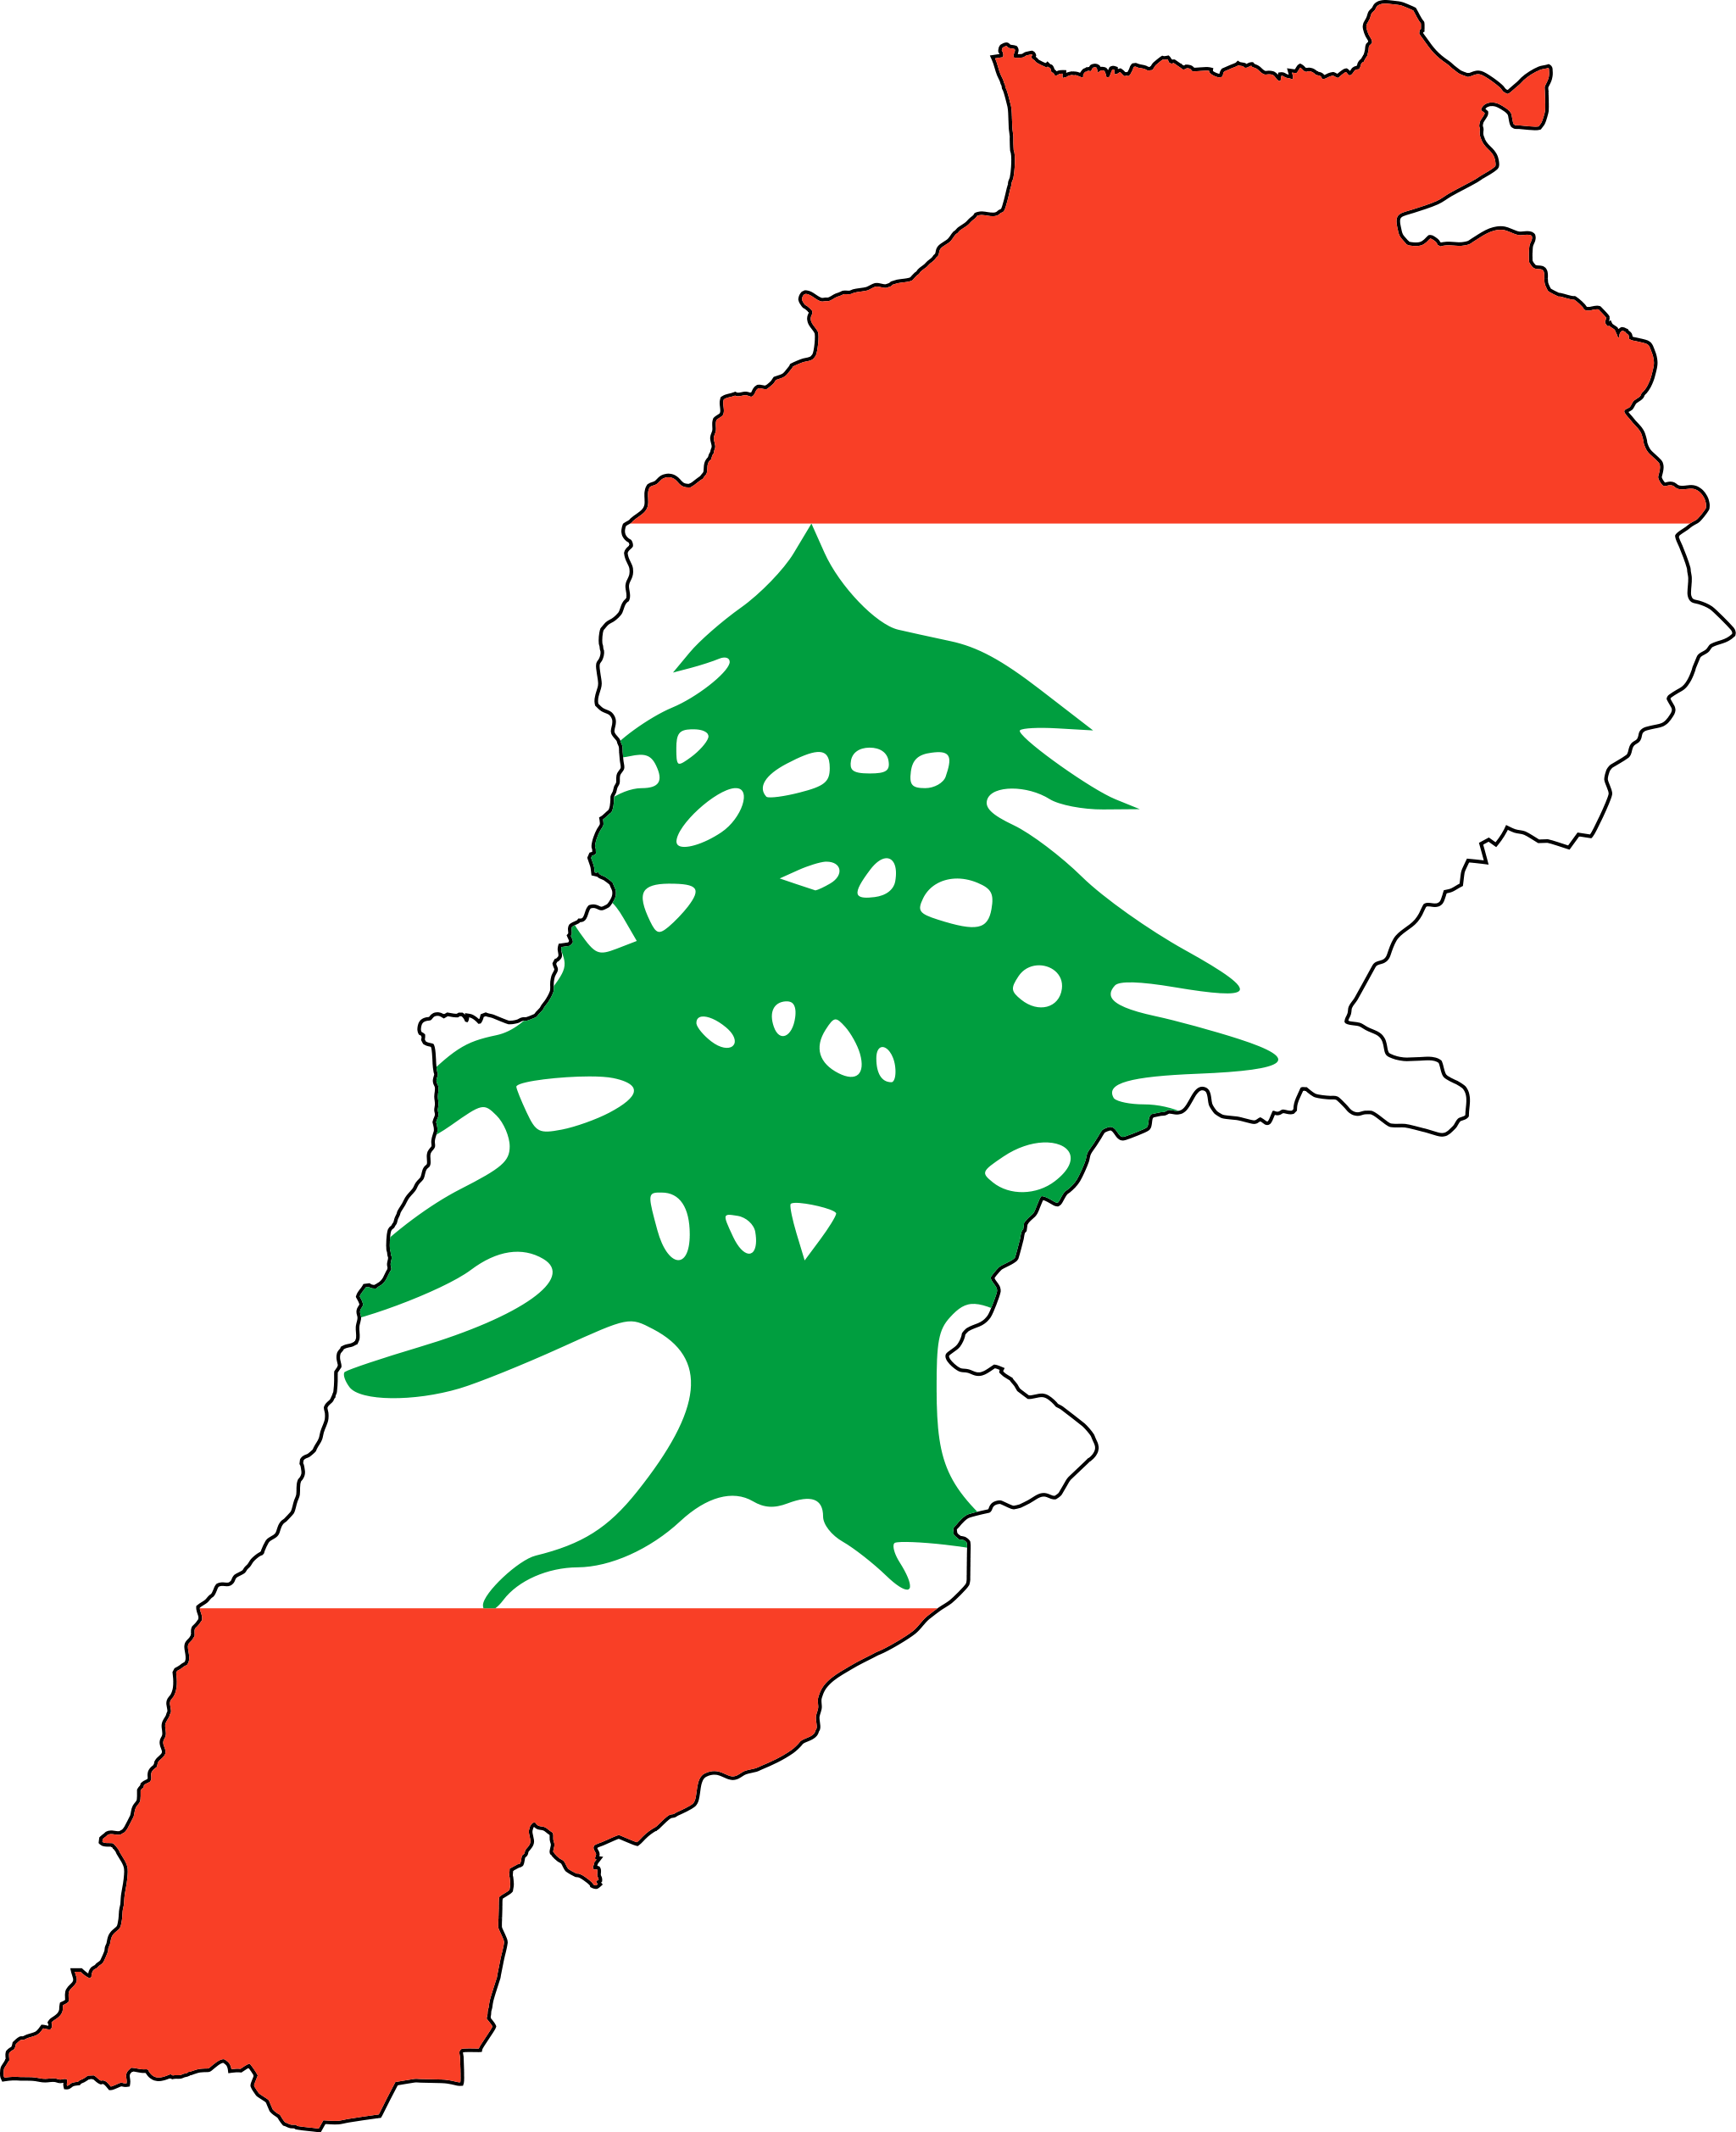 Lebanon Flag Map Lebanon Officially Known As The Lebanese - Lebanon map